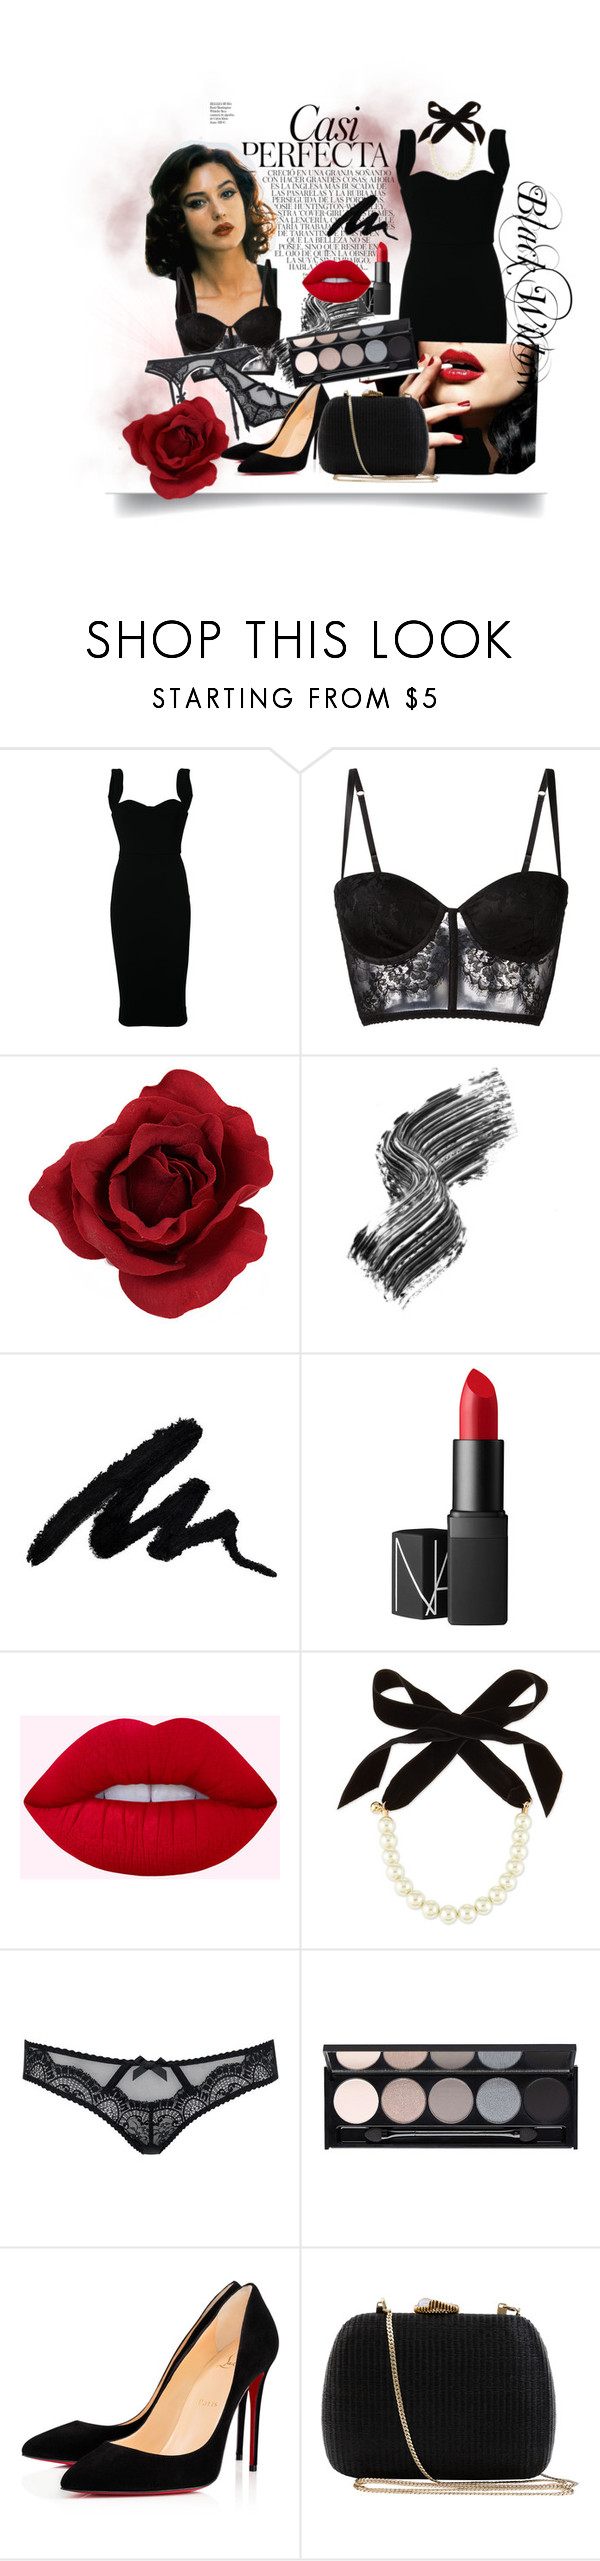 """""""Black Widow"""" by chris-stenly ❤ liked on Polyvore featuring Whiteley, Victoria Beckham, I.D. SARRIERI, Illamasqua, NARS Cosmetics, Lulu Frost, L'Agent By Agent Provocateur, Witchery, Christian Louboutin and Serpui"""